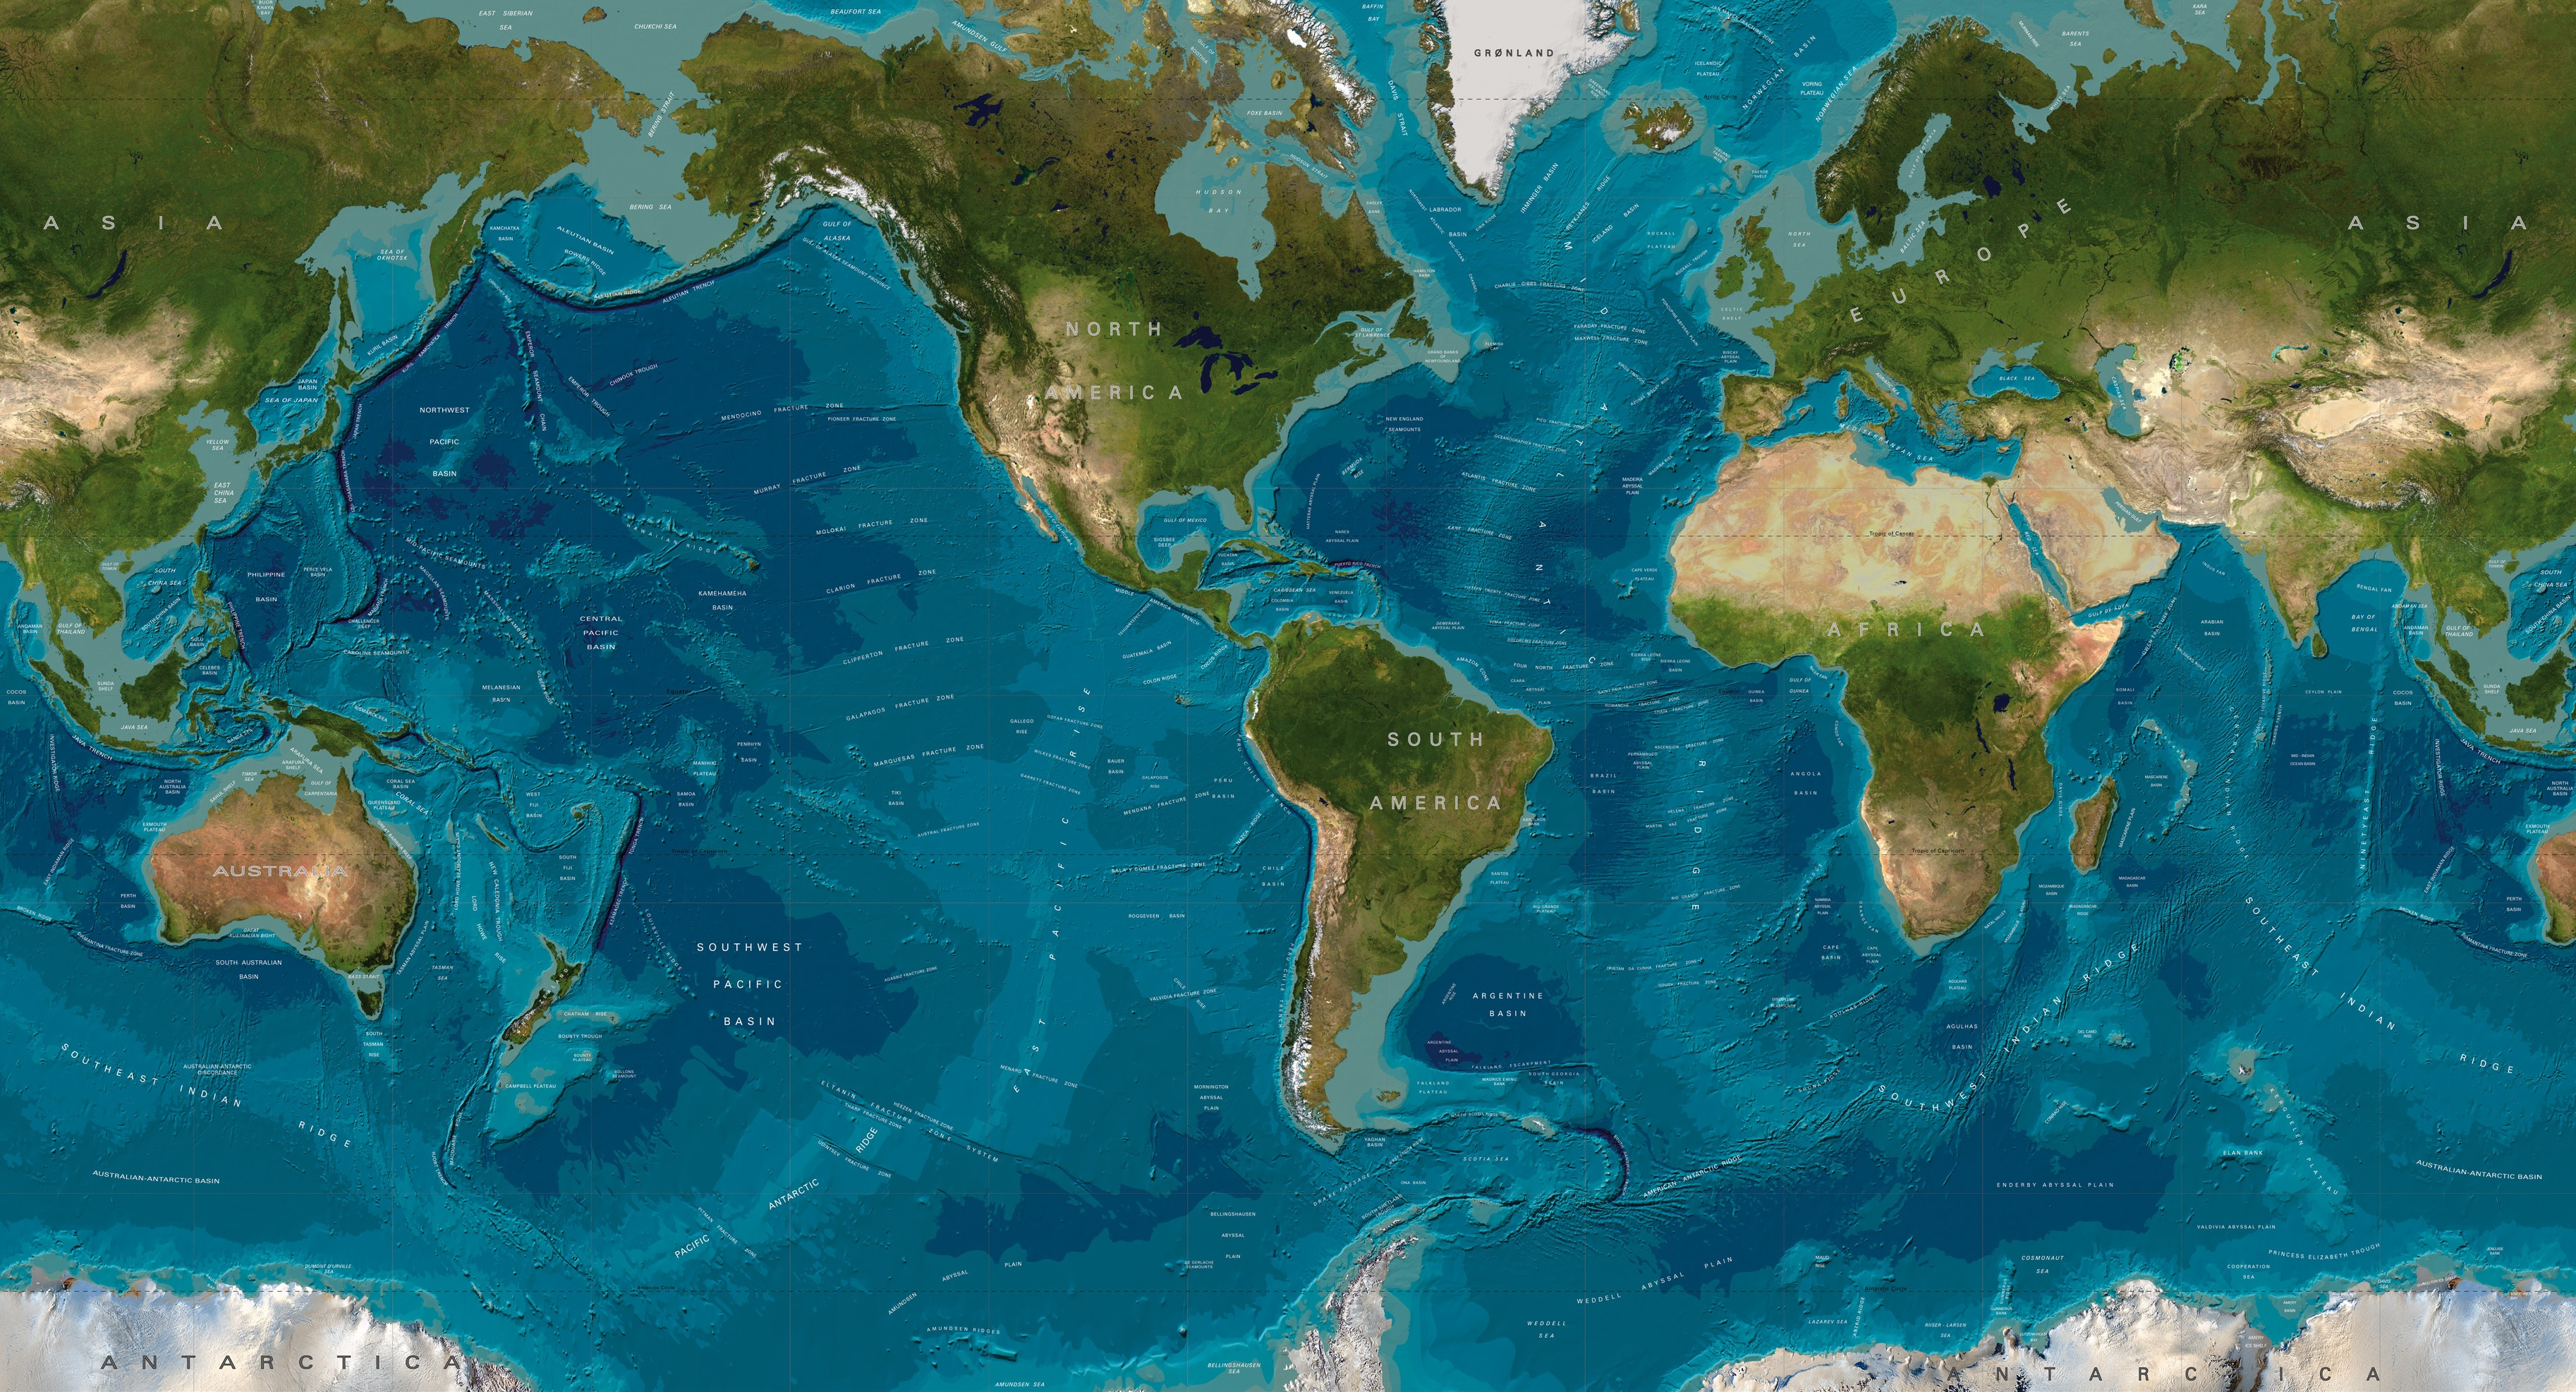 Geopolitical or Topographical Geochron